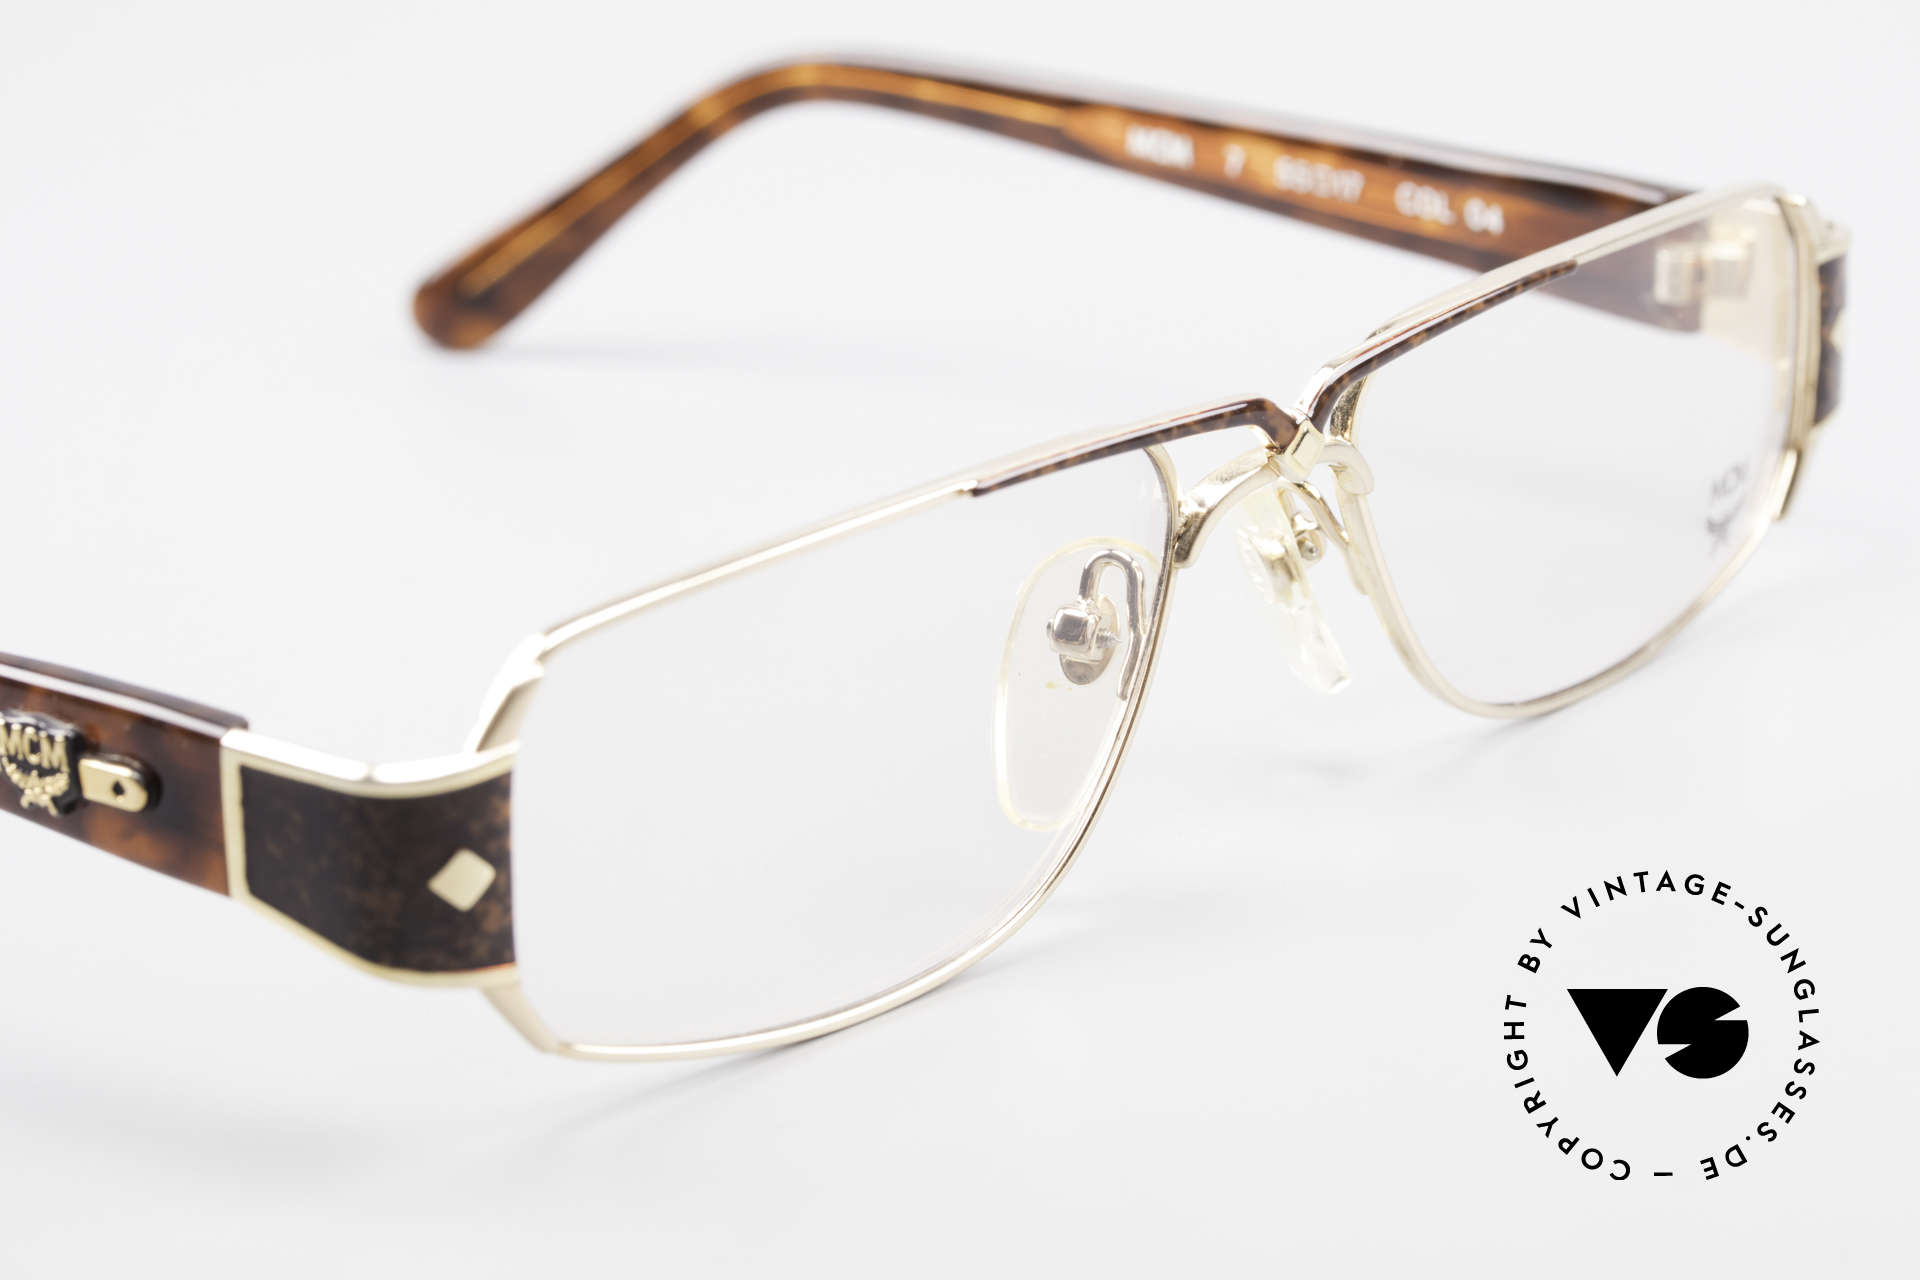 MCM München 7 80's Luxury Reading Glasses, NO retro glasses, but an old 1980's ORIGINAL!, Made for Men and Women